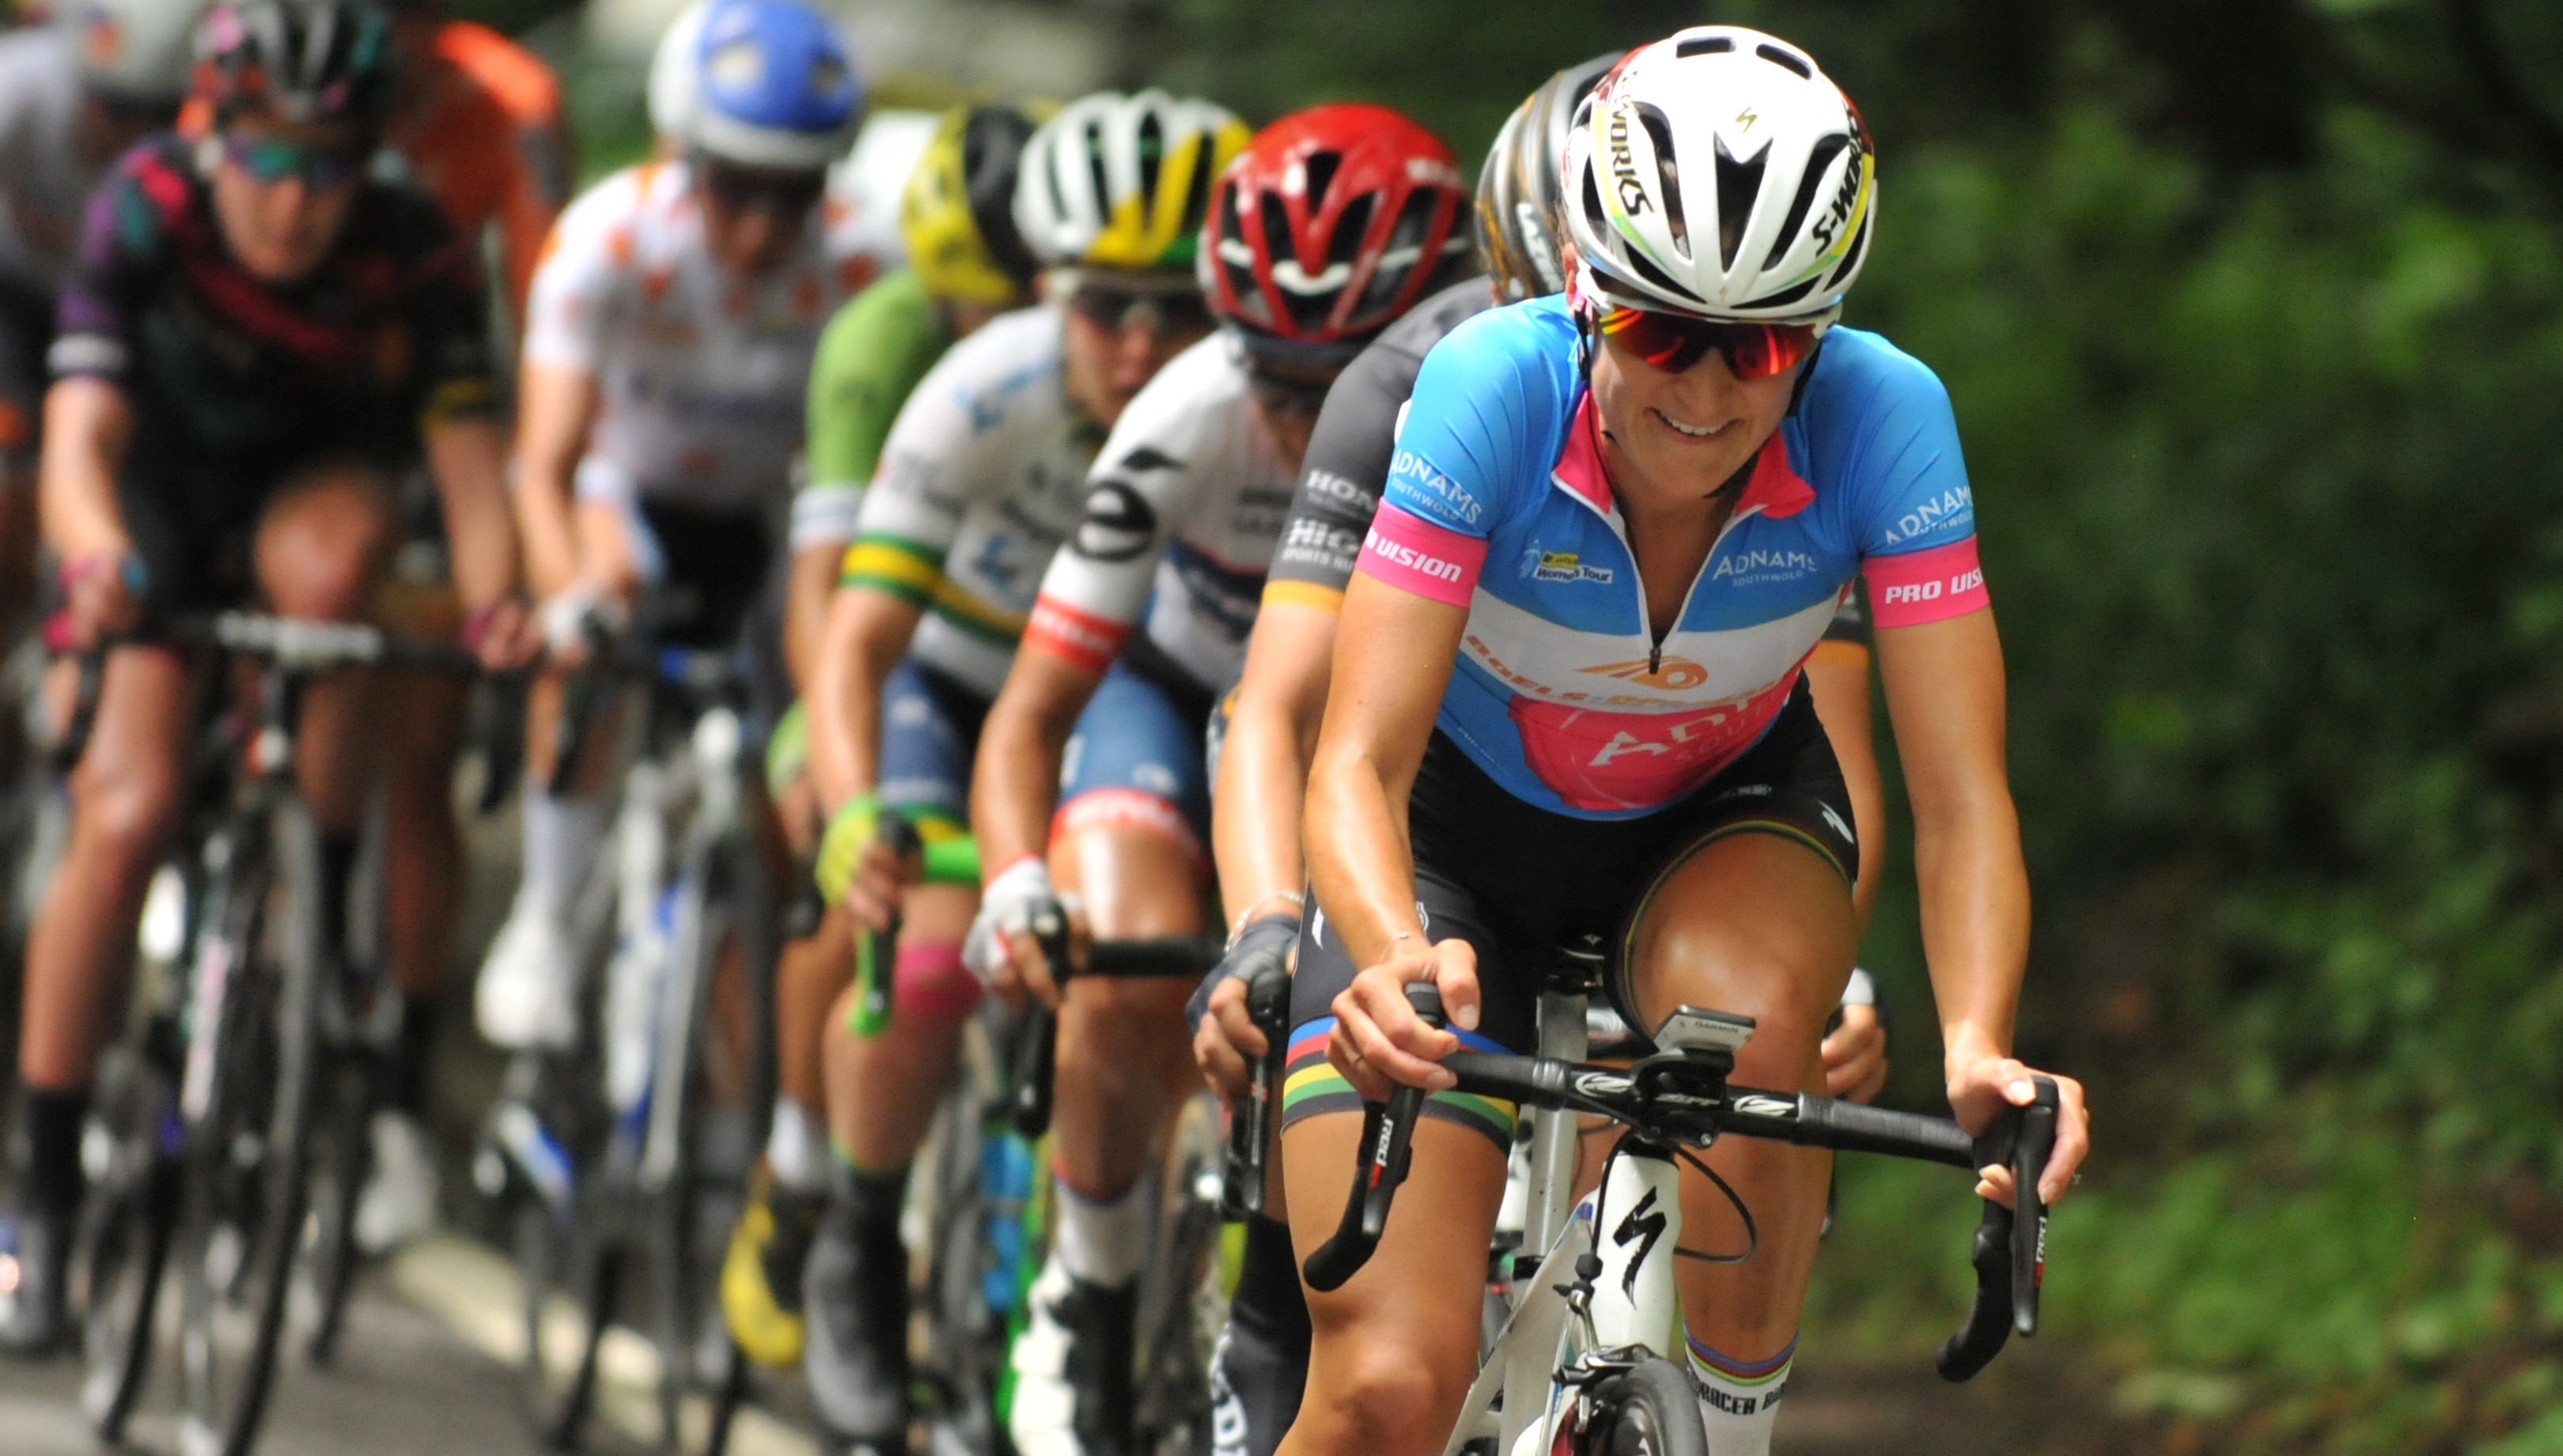 Watch highlights of all 5 Stages of the 2016 Aviva Women's Tour on the ITV Hub